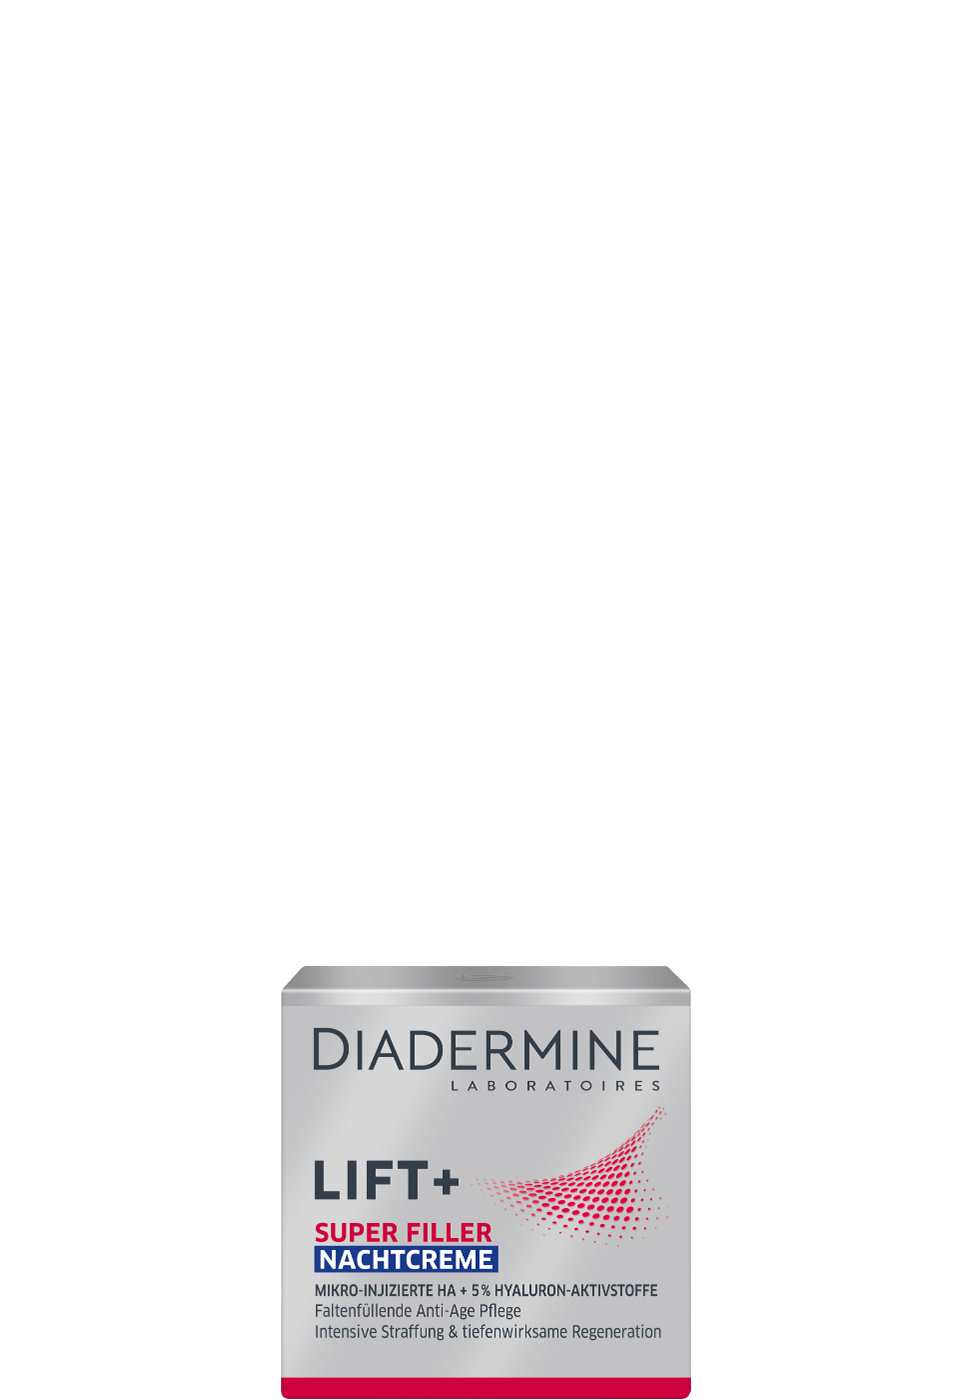 diaatrmine_at_lift_plus_super_filler_nachtcreme_970x1400